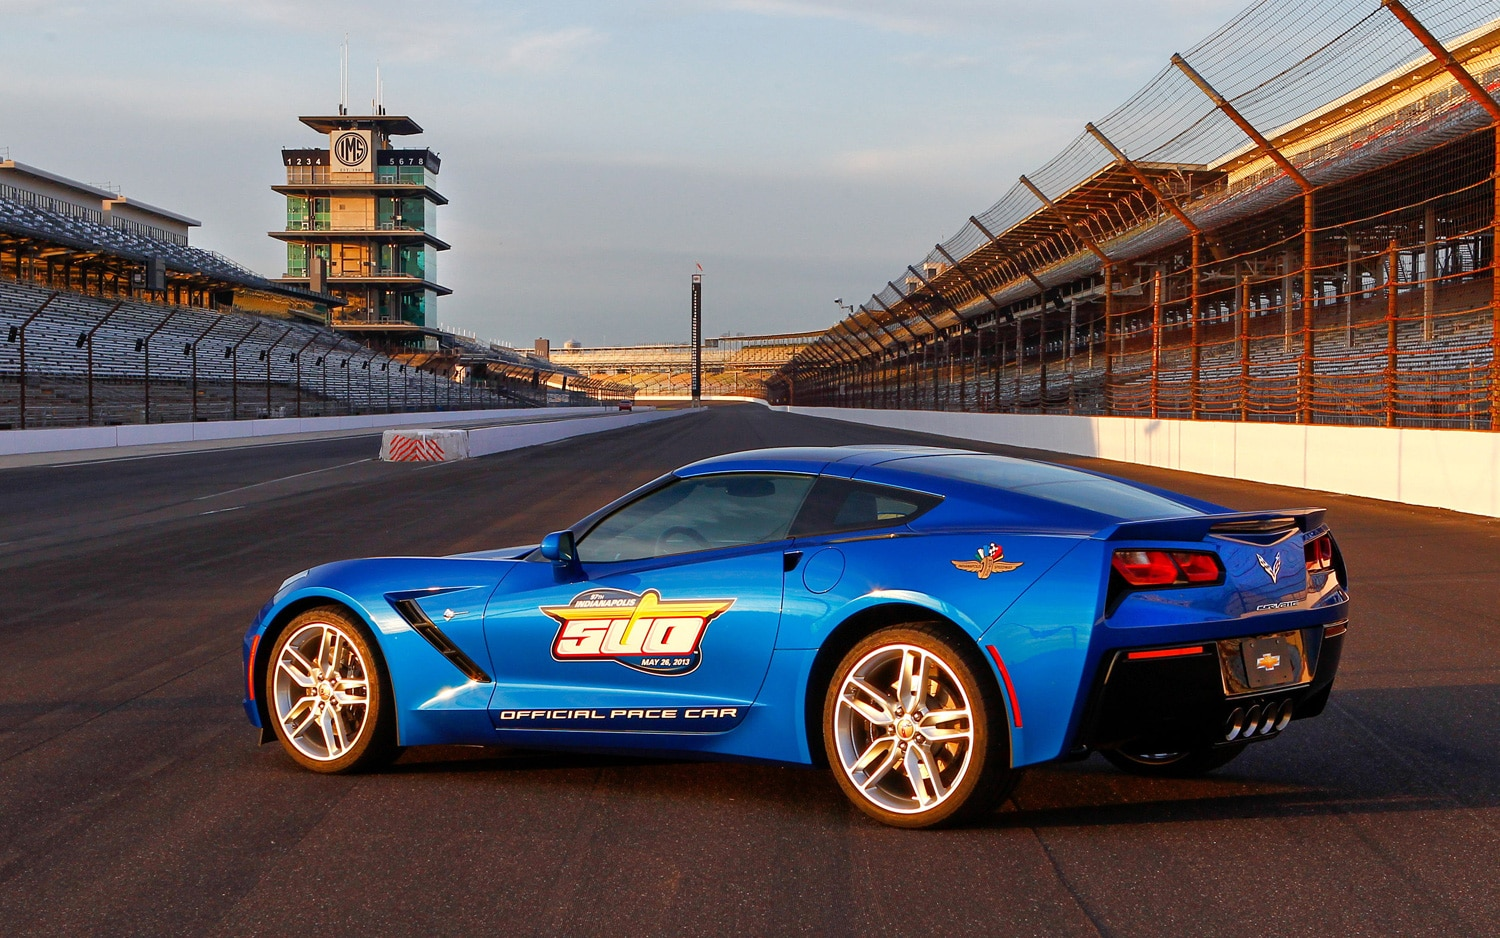 2014 Chevrolet Corvette Is 2013 Indy 500 Pace Car